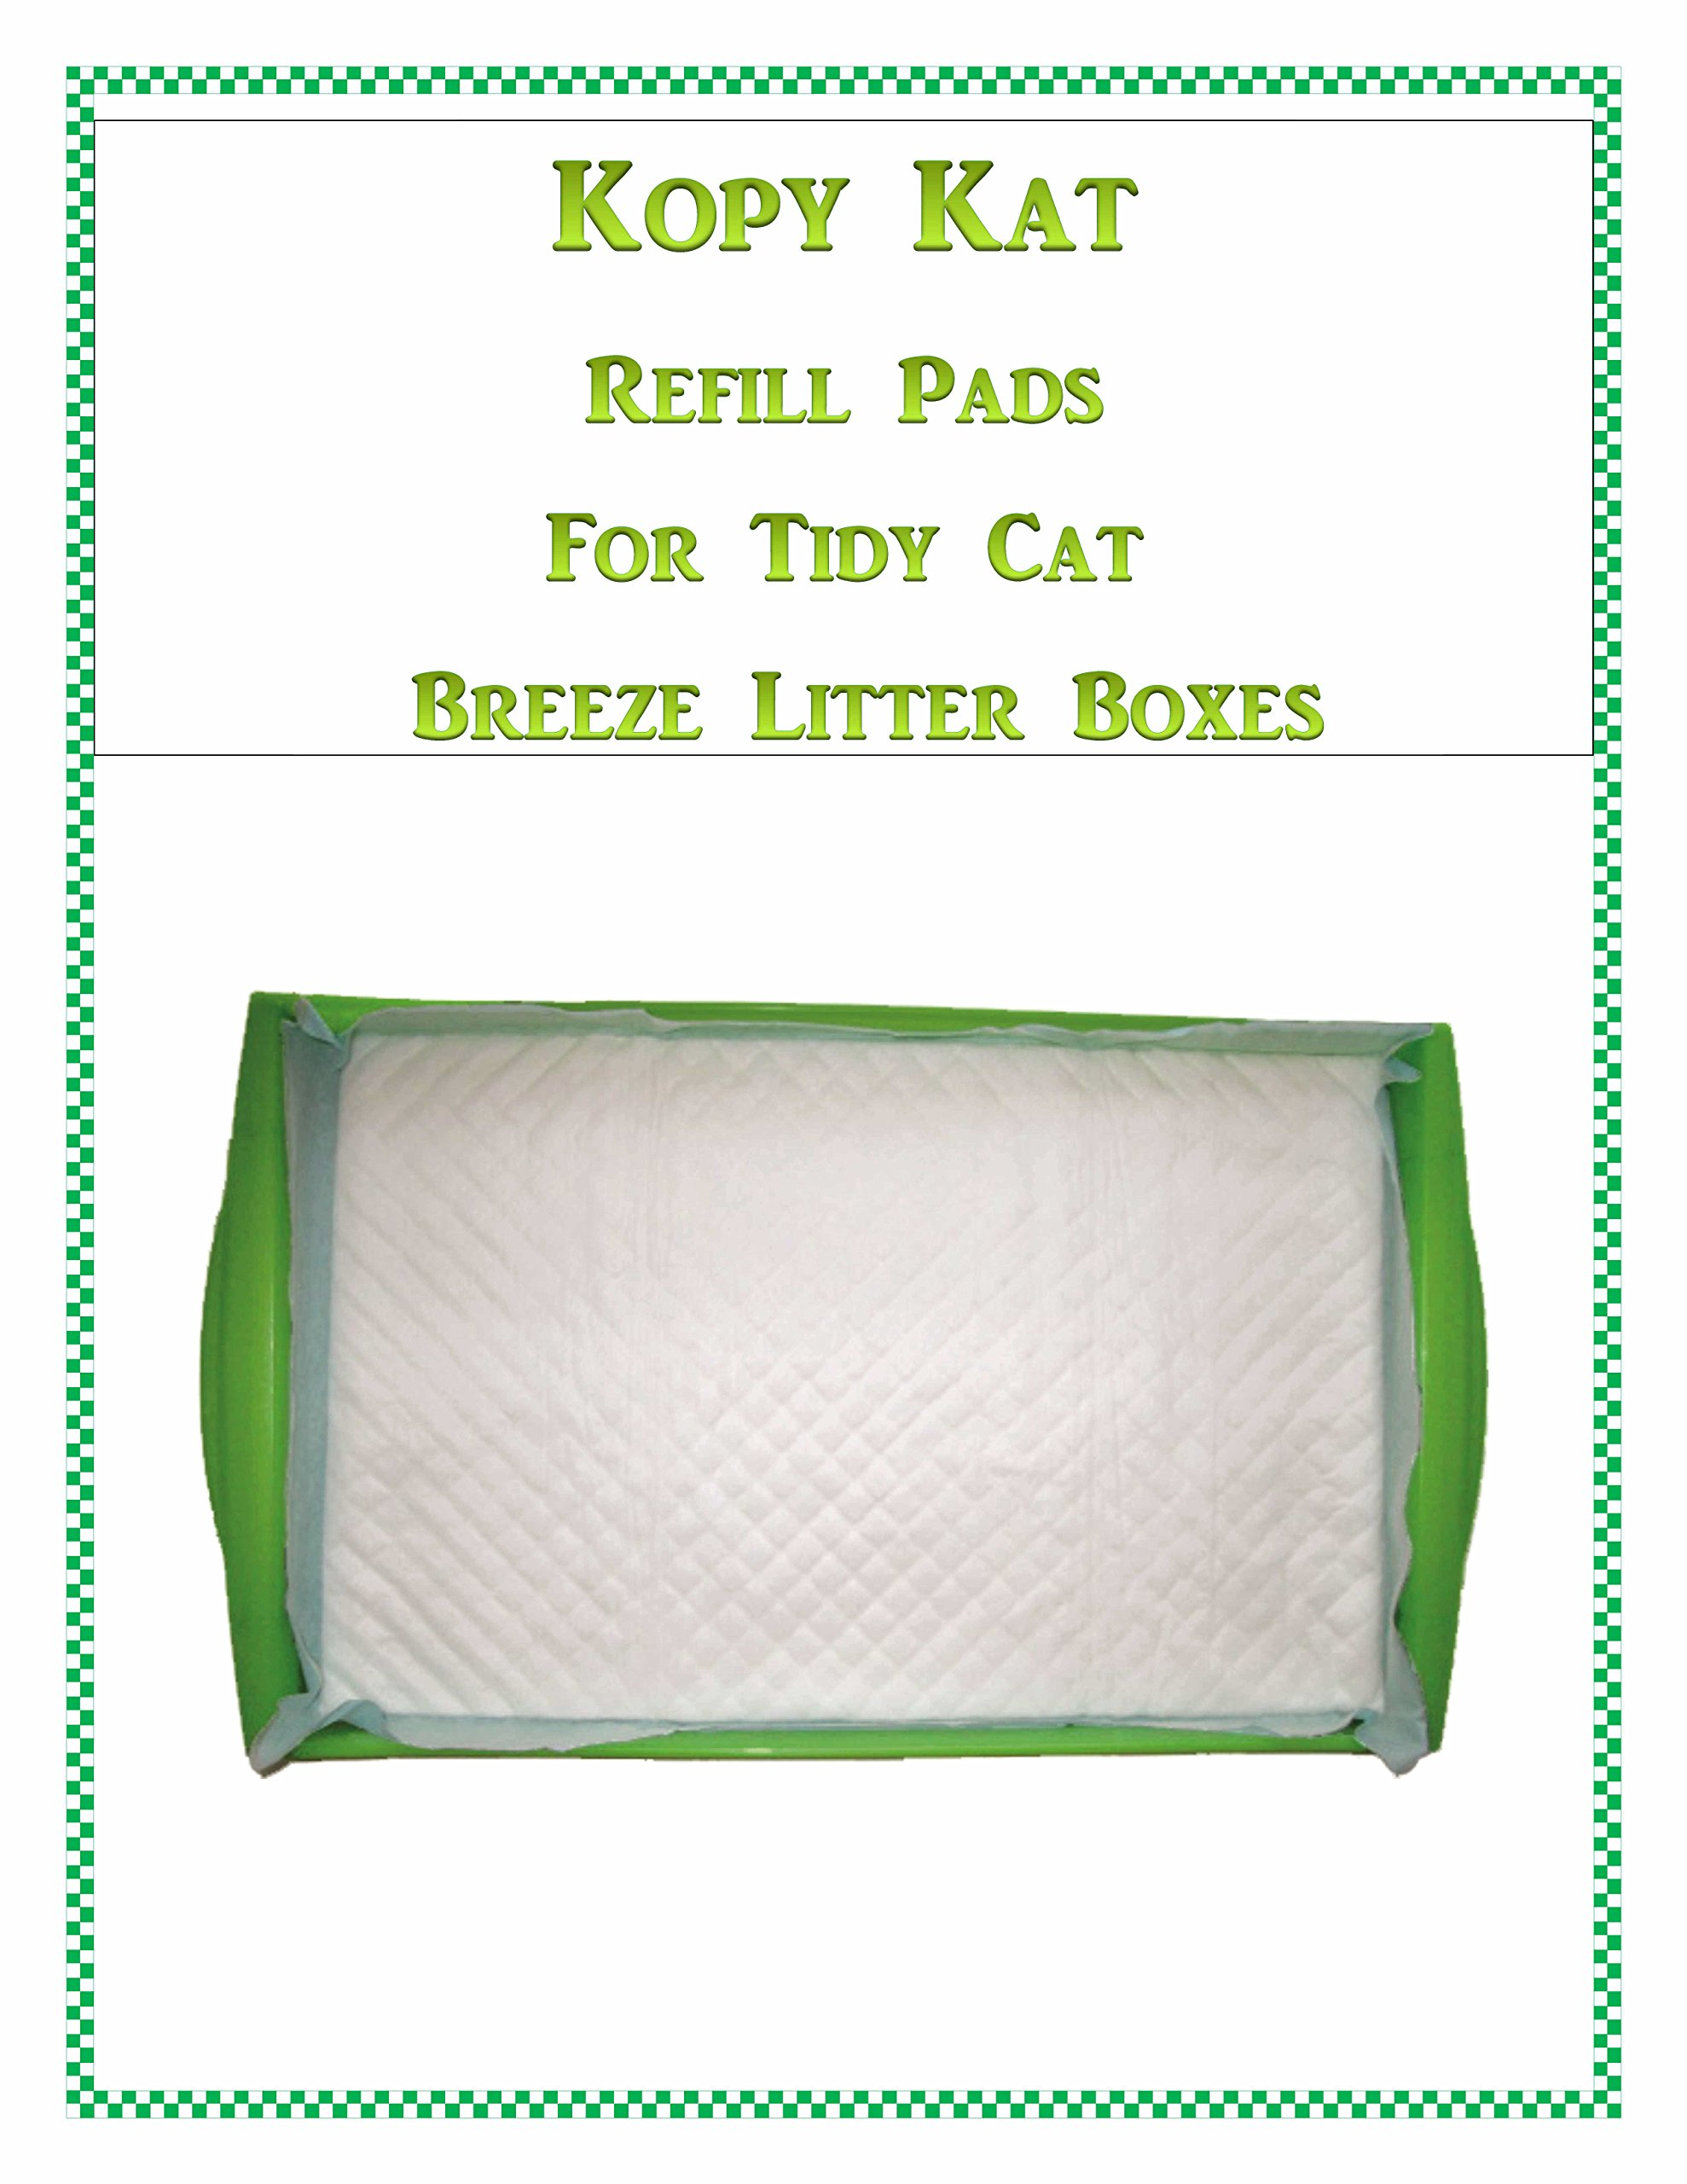 Kopy Kat Refill Pads for Tidy Cat Breeze Litter Boxes 160ct